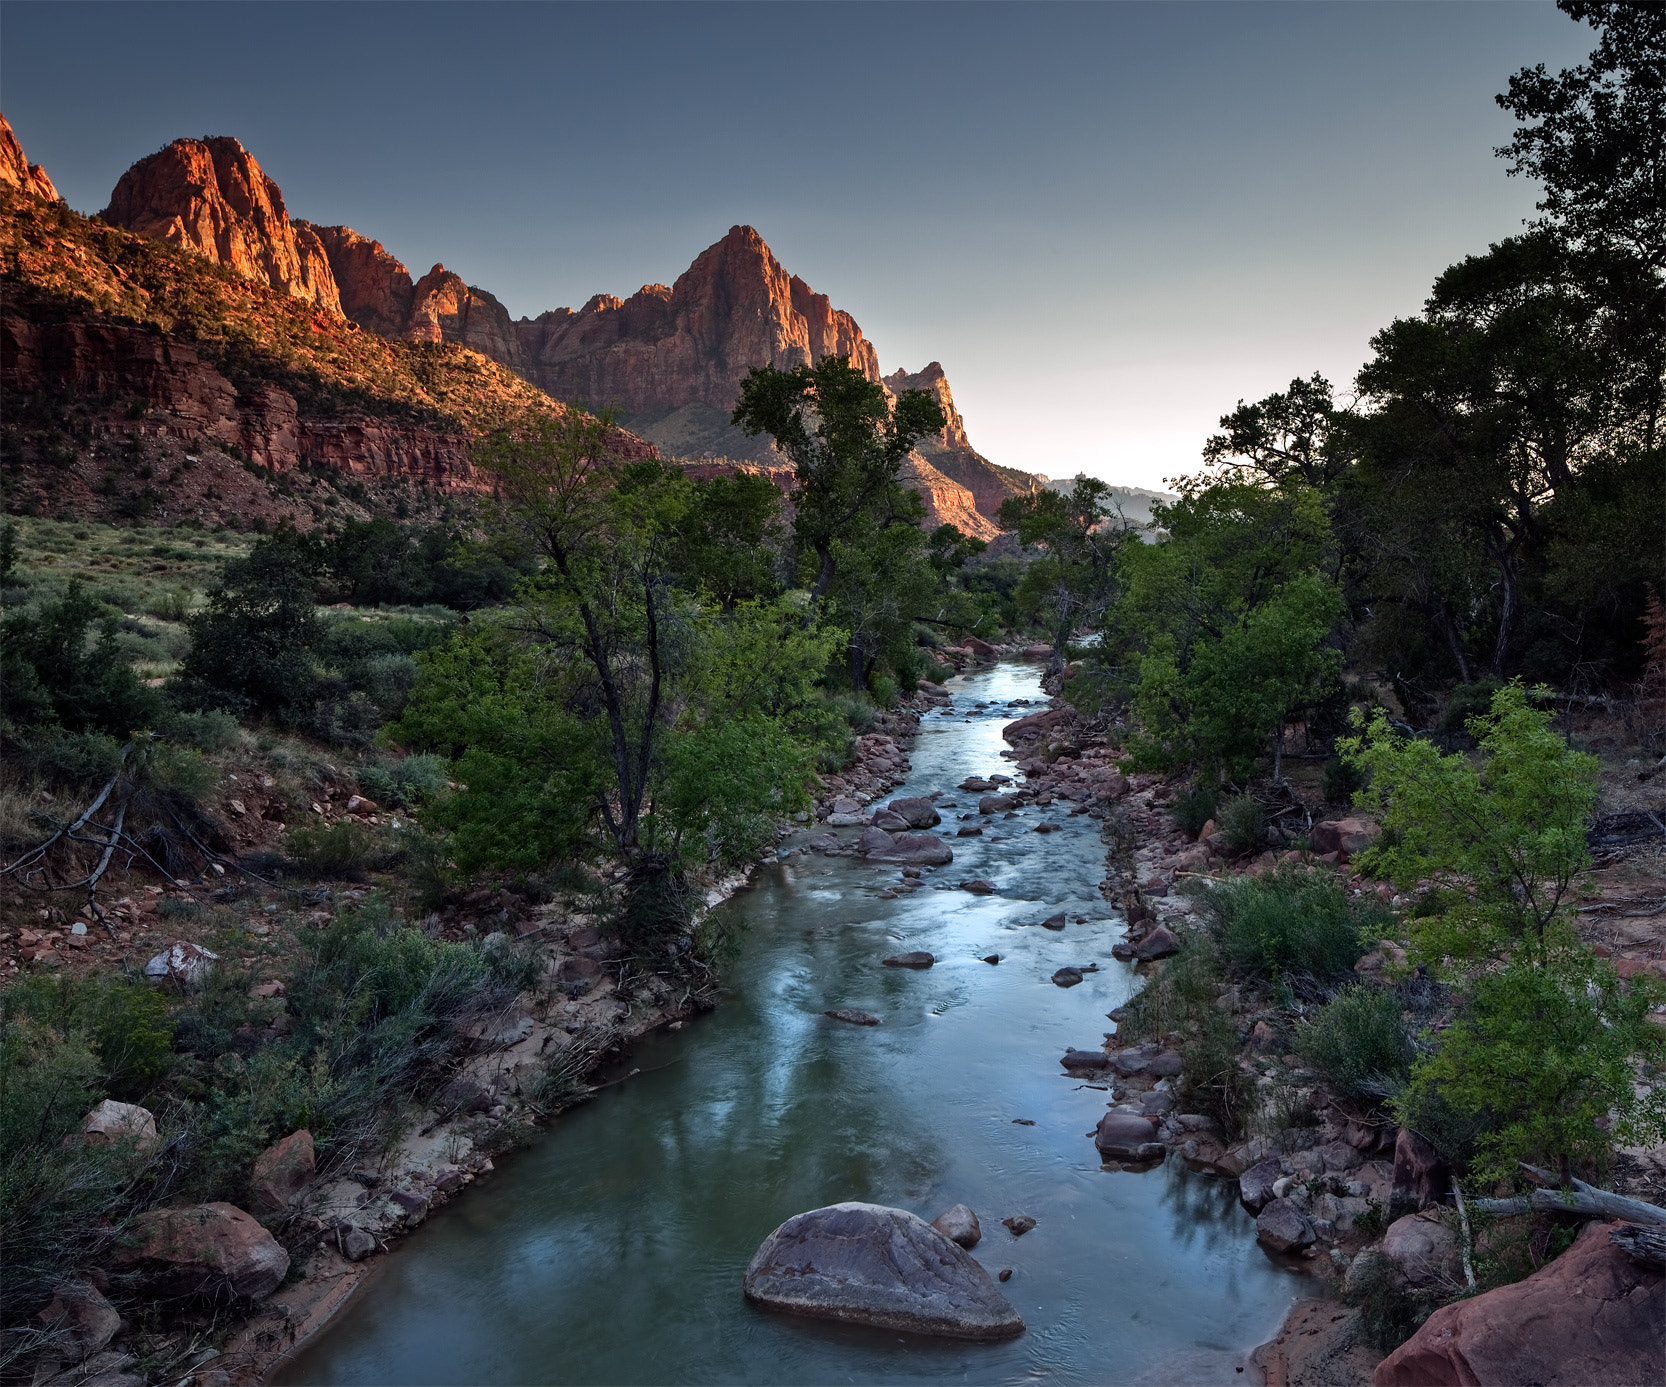 Photograph The Watchman by Brendan O Neill on 500px